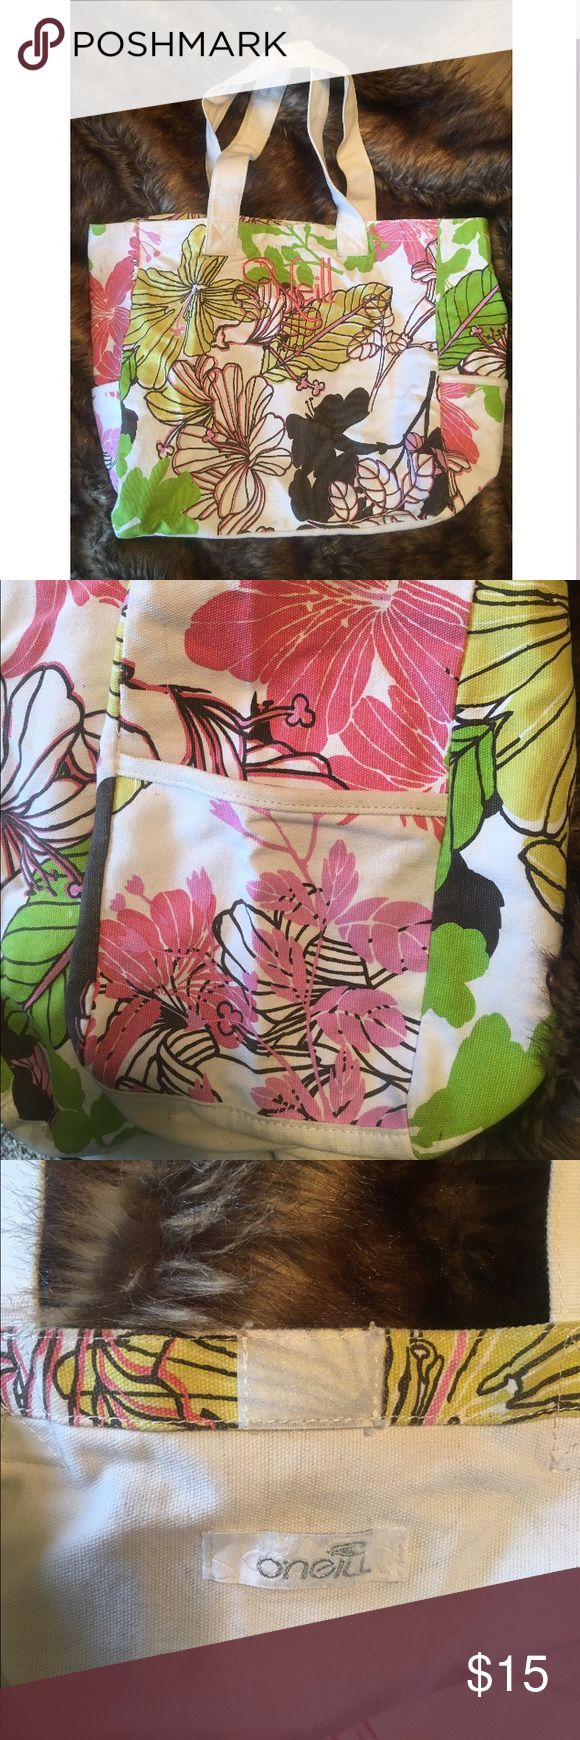 O'Neill Floral Tote Bag Adorable Floral Tote Bag, Velcro Closure, Pockets on Each Side, 21 inches wide & 14 inches tall (Laying Flat). Perfect Daily Tote! Lightly Used As A Beach Bag & For School But in Good Shape! O'Neill Bags Totes